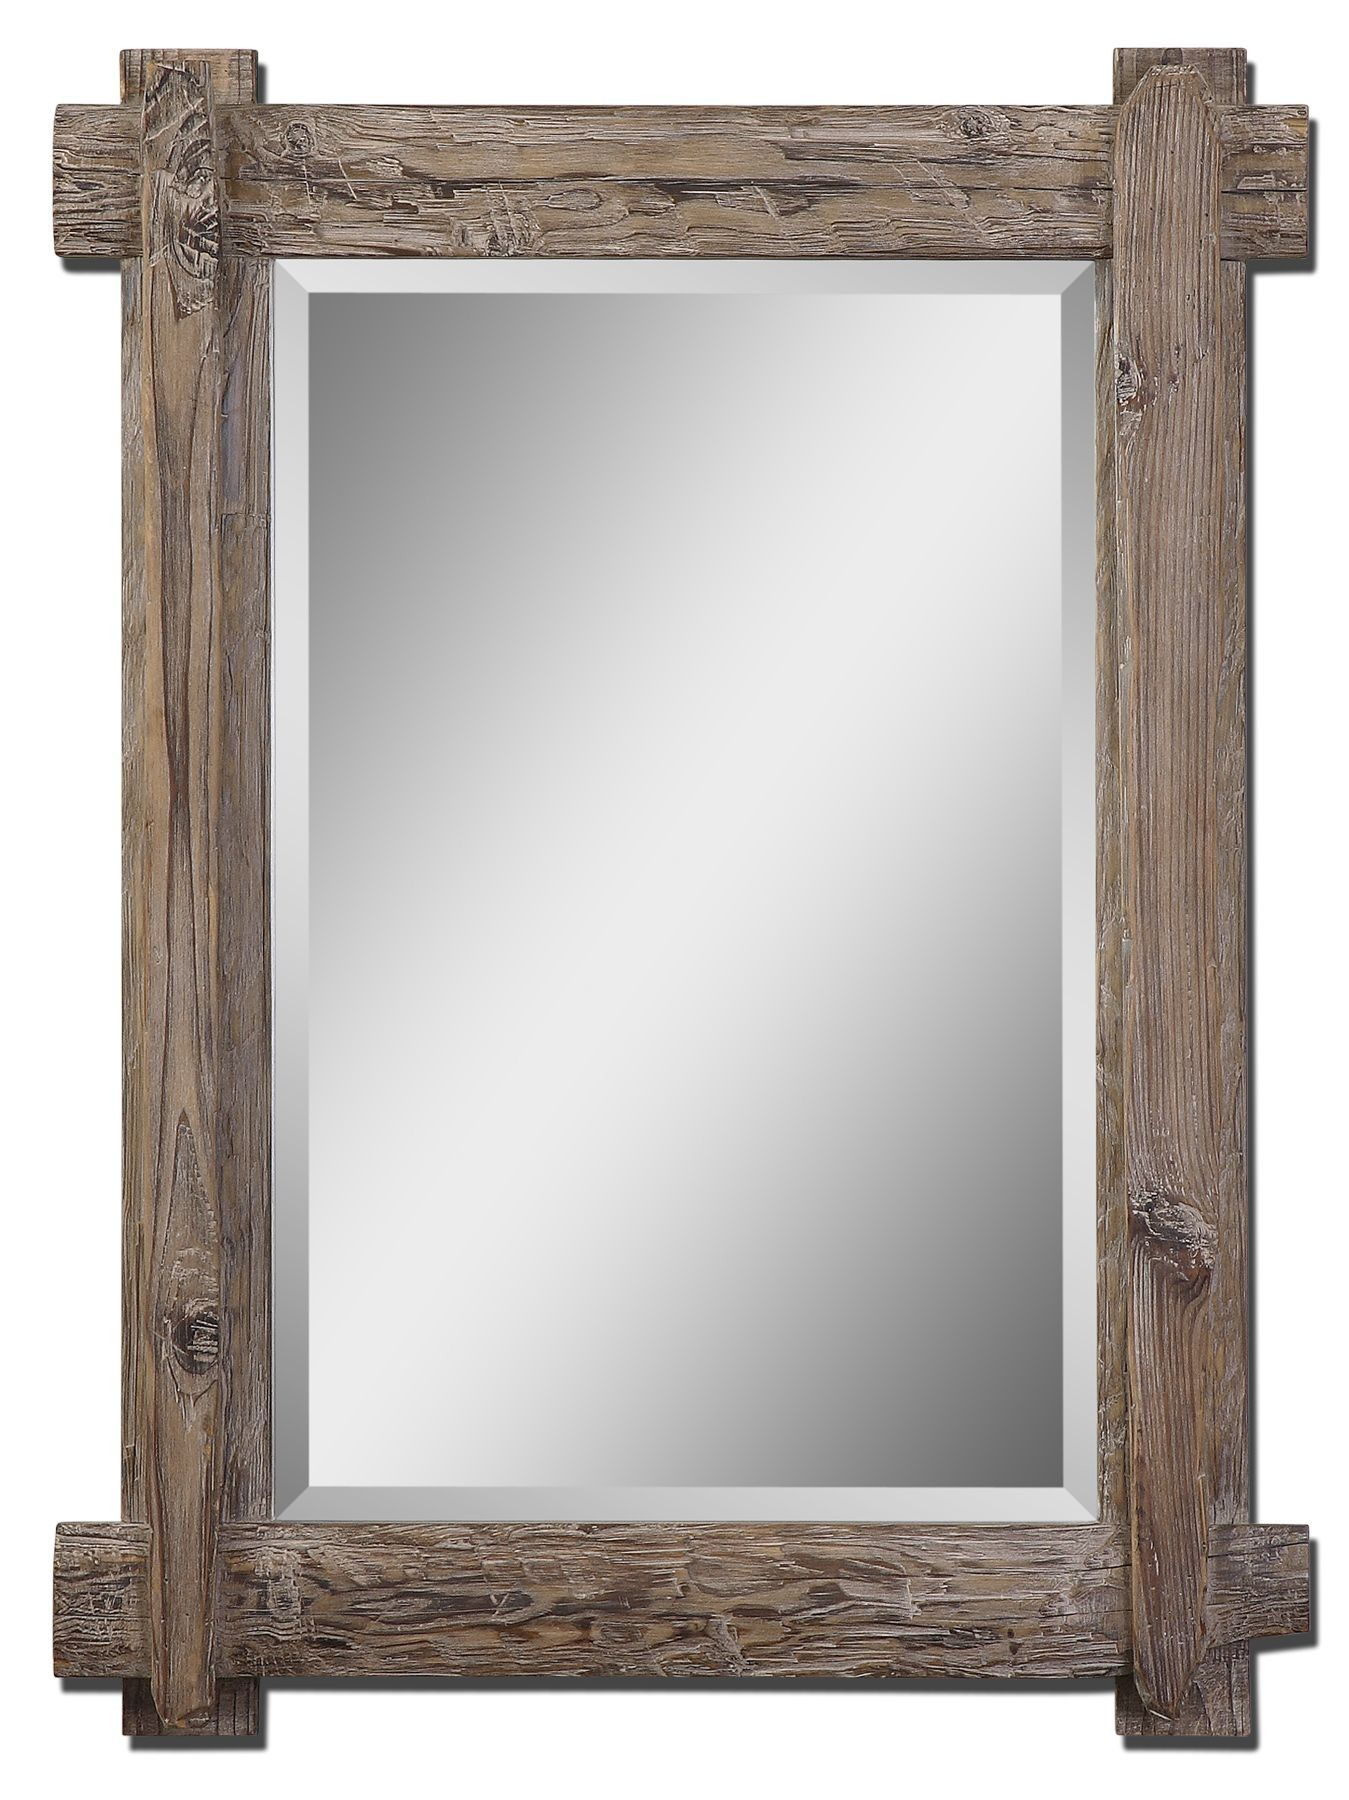 Uttermost Claudio Mirror Rustic Wall Mirrors Wood Framed Mirror Large Wall Mirror